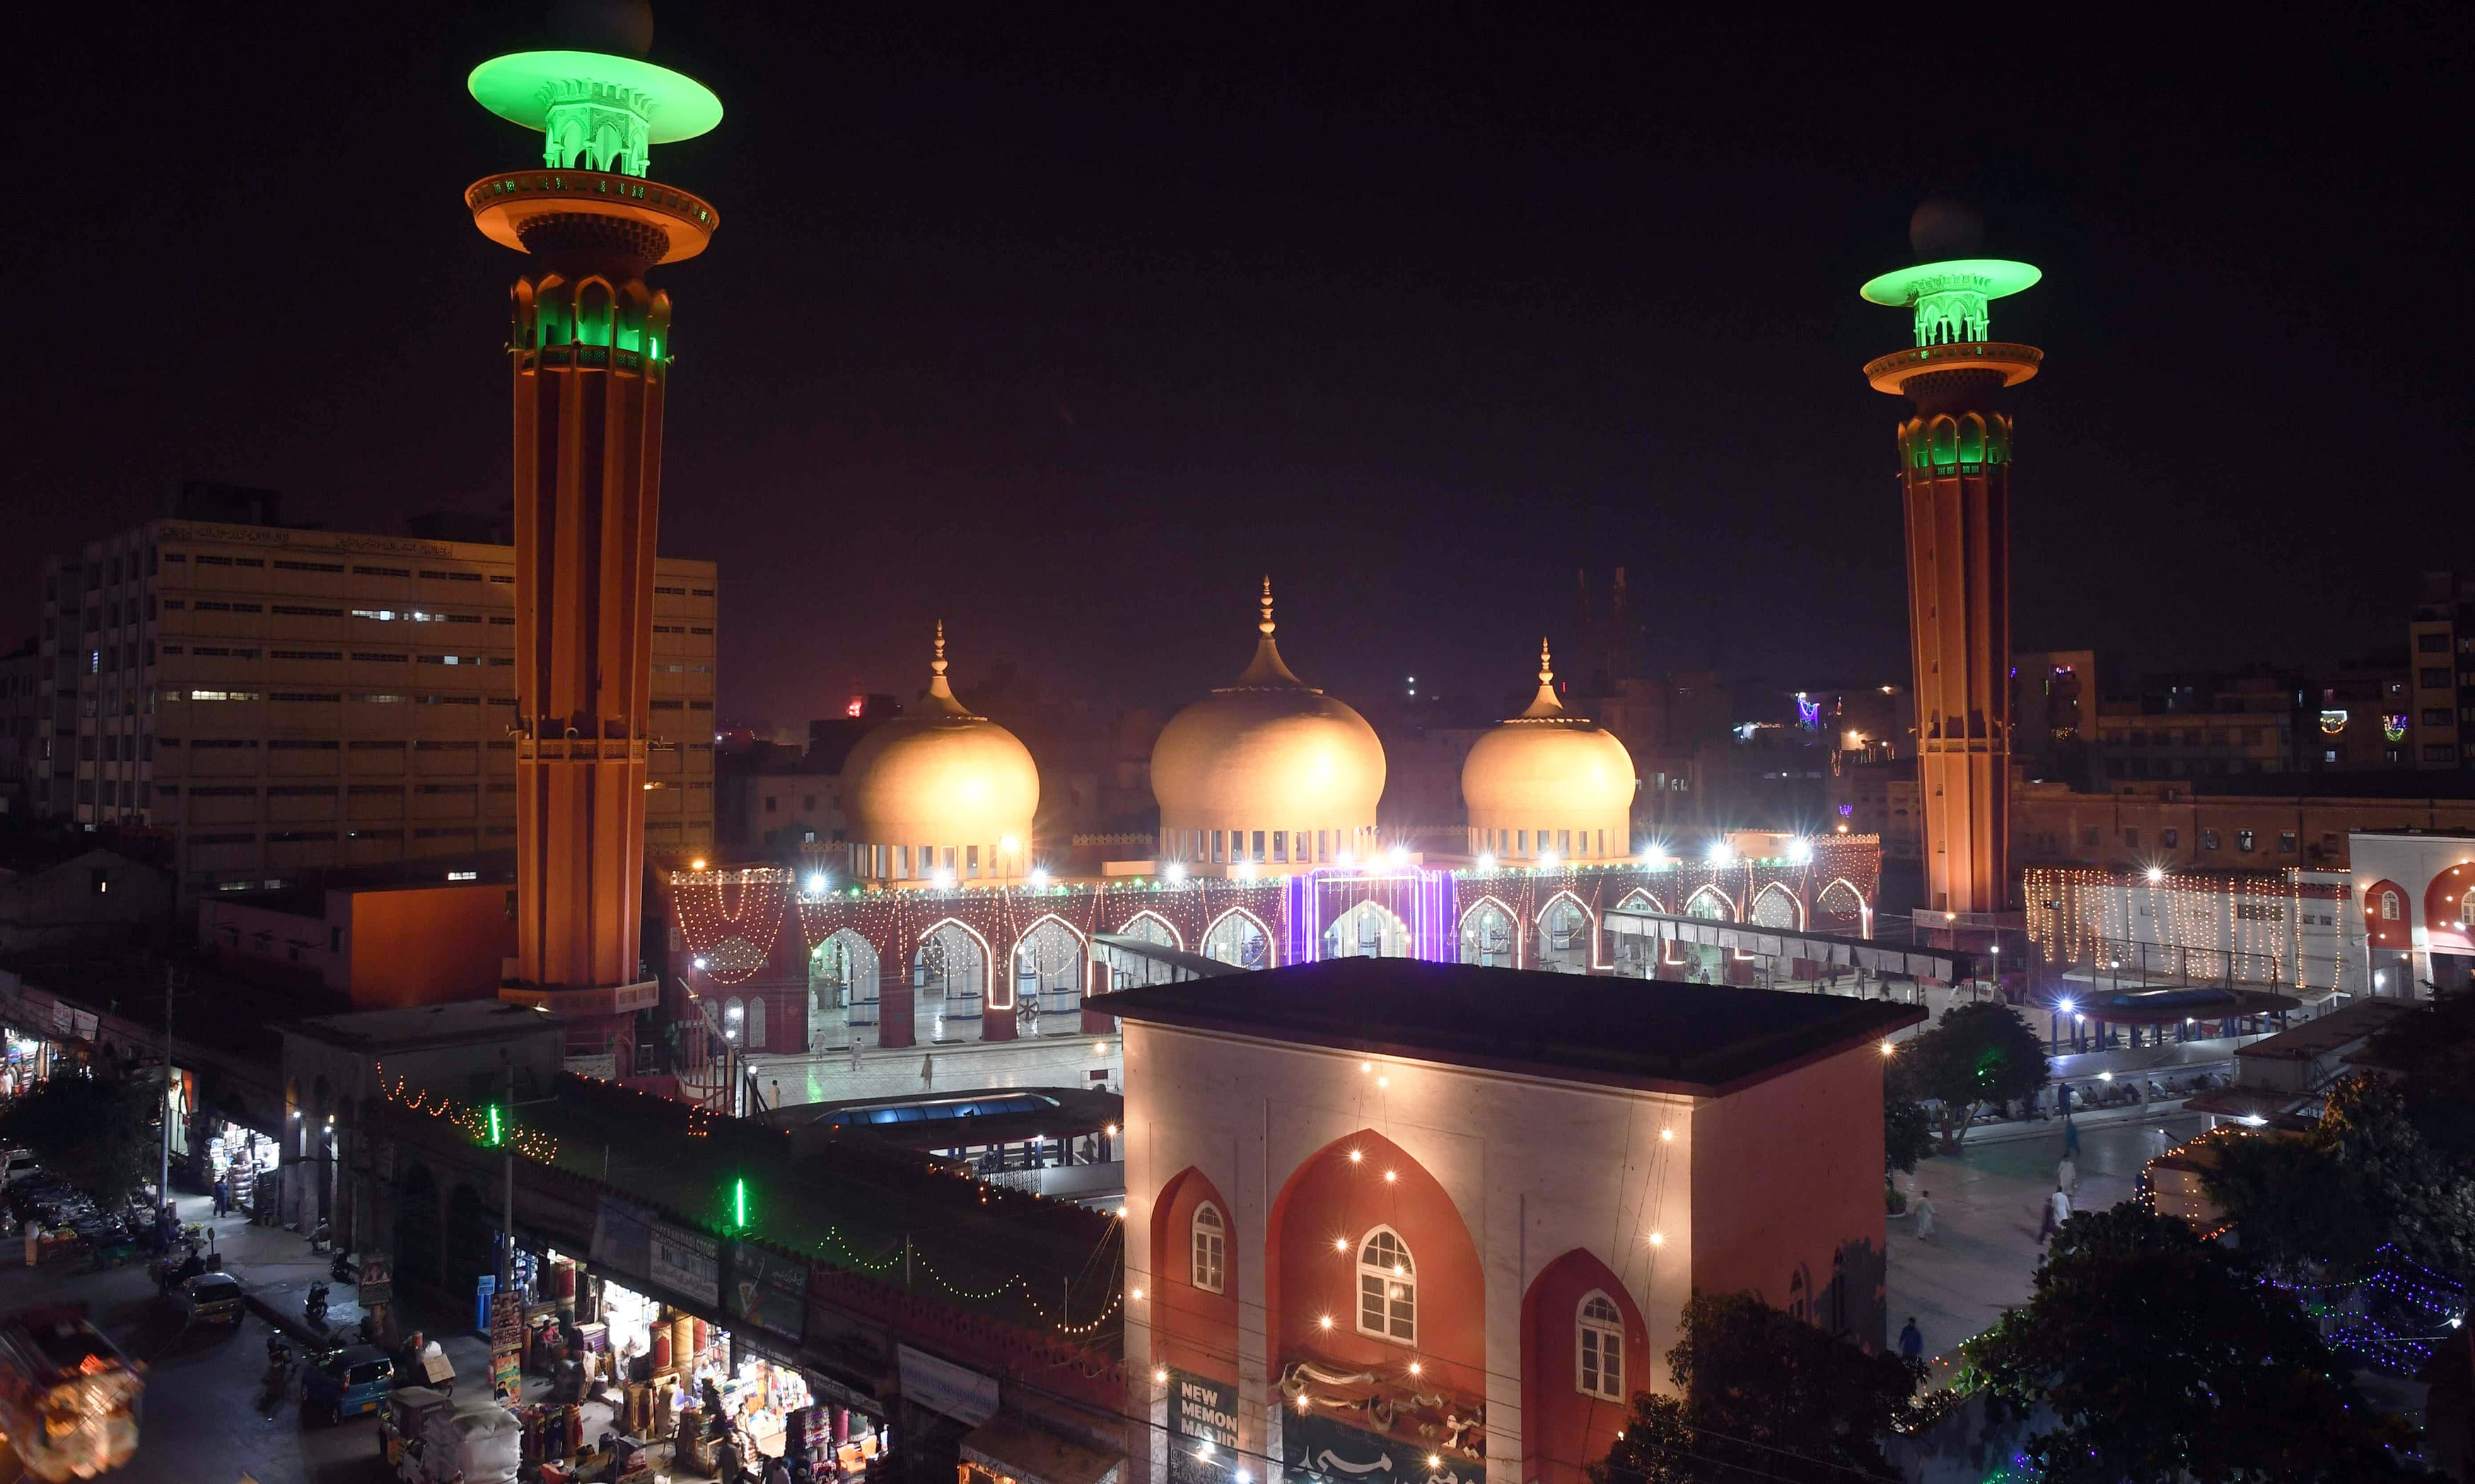 In pictures: Country gears up to observe Eid-i-Miladun Nabi